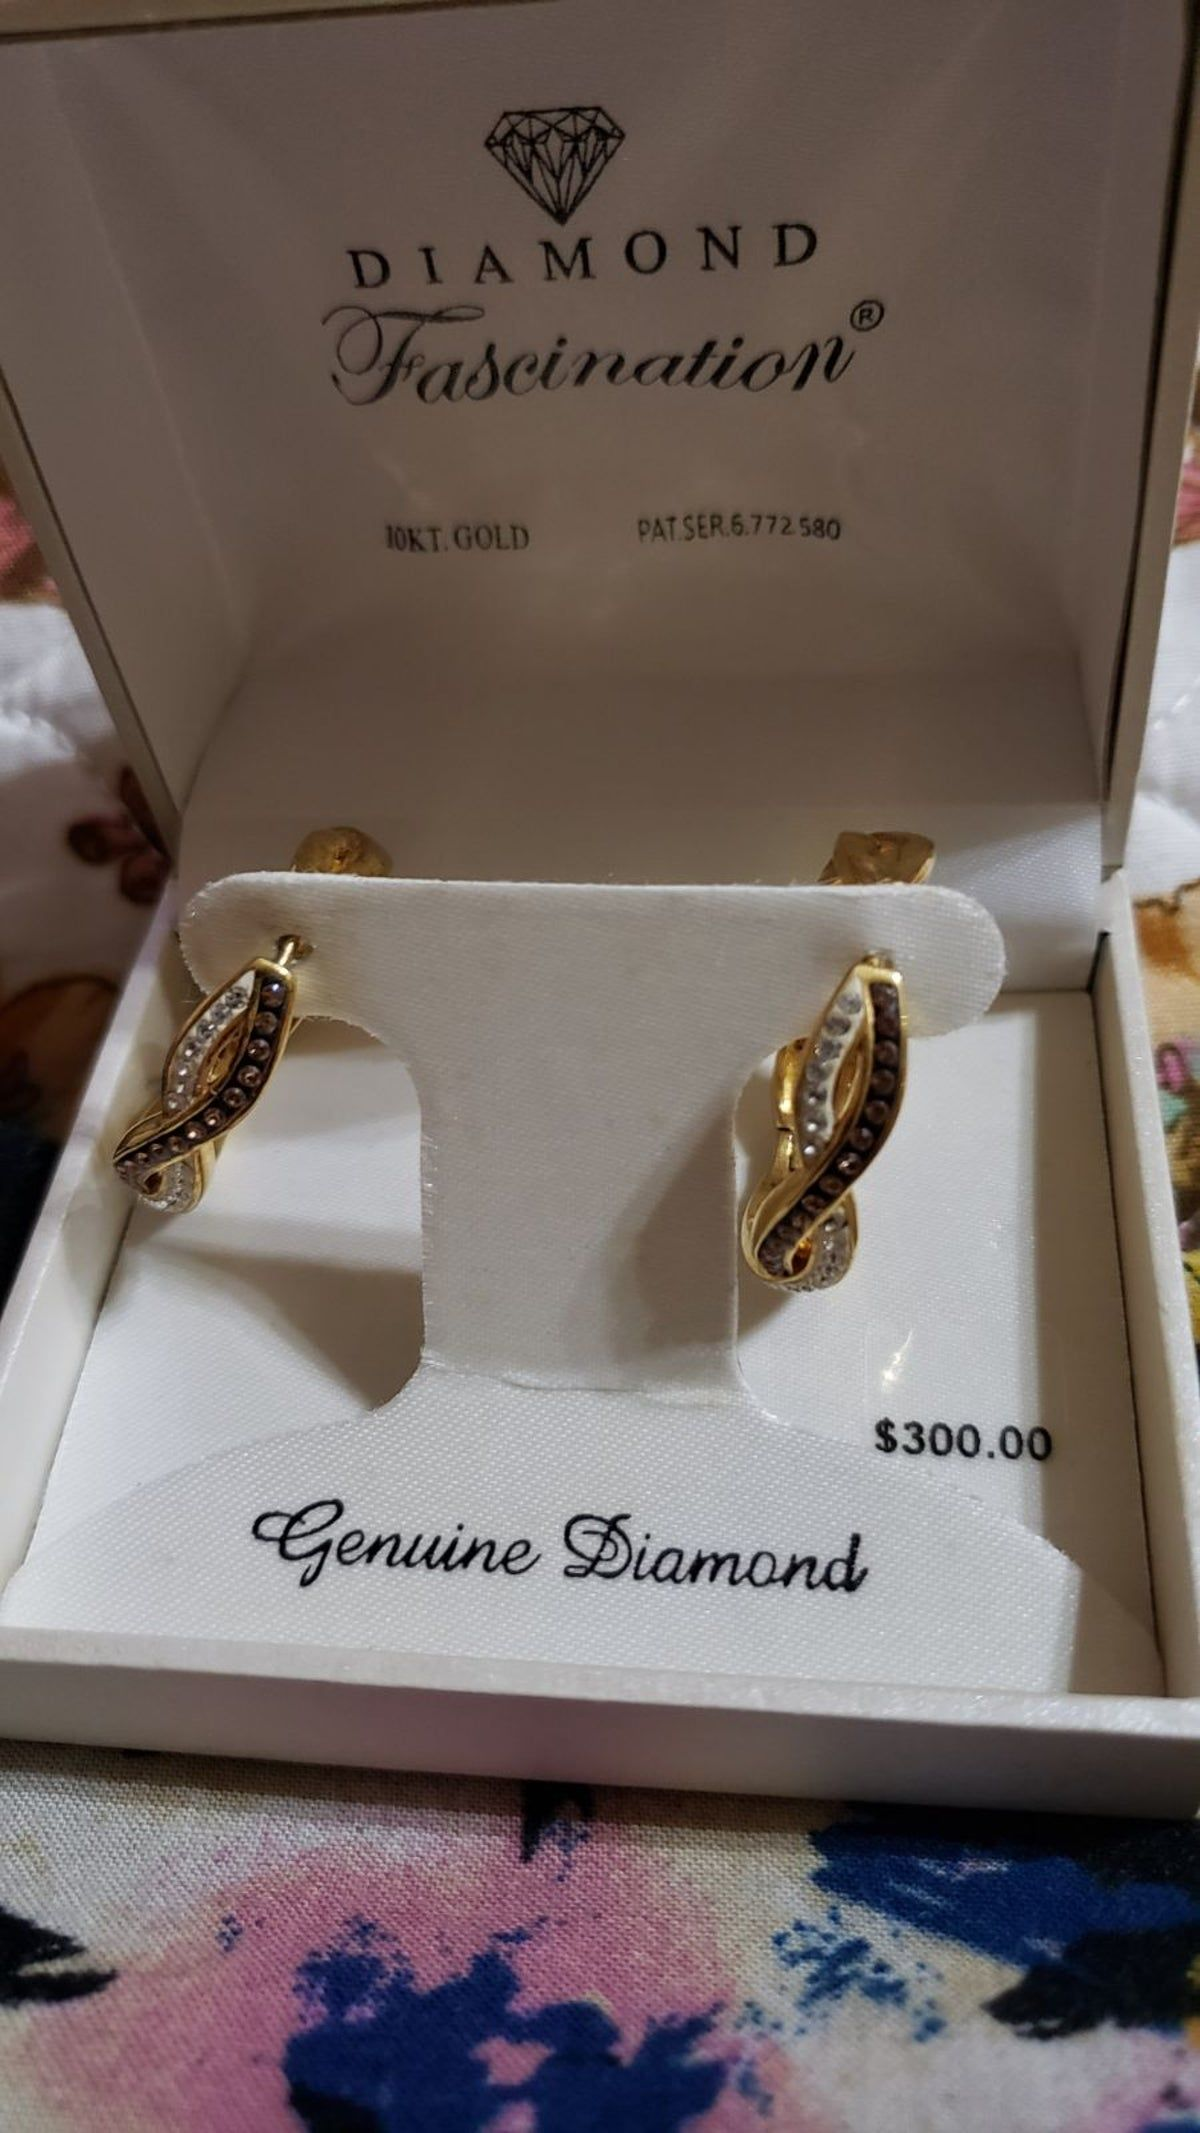 10k Gold Diamond Fascination Nwt In 2020 10kt Gold 10k Gold Gold Diamond